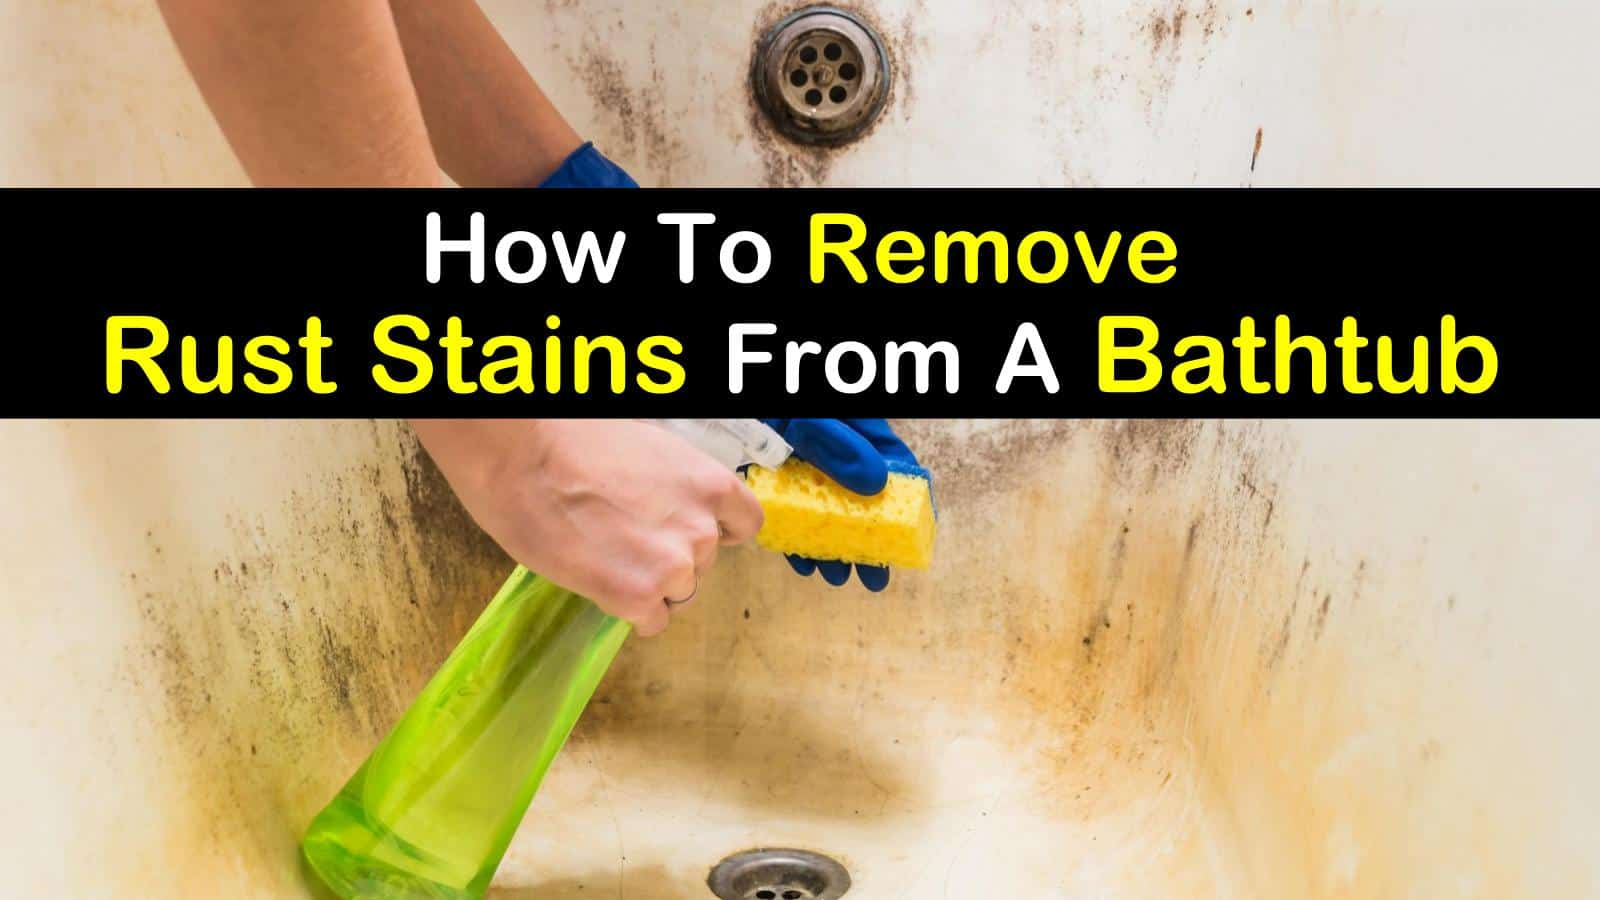 how to remove rust stains from a bathtub  titilimg